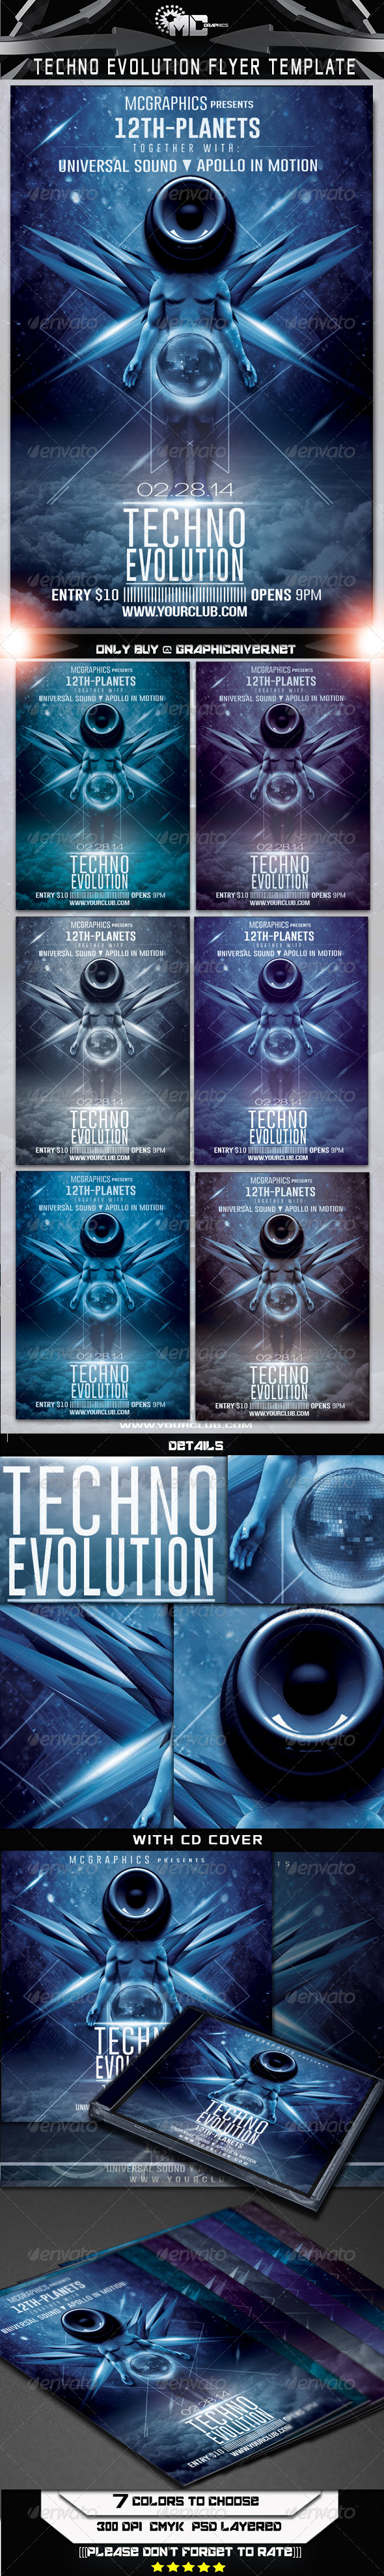 Techno Evolution Flyer Template - Flyers Print Templates